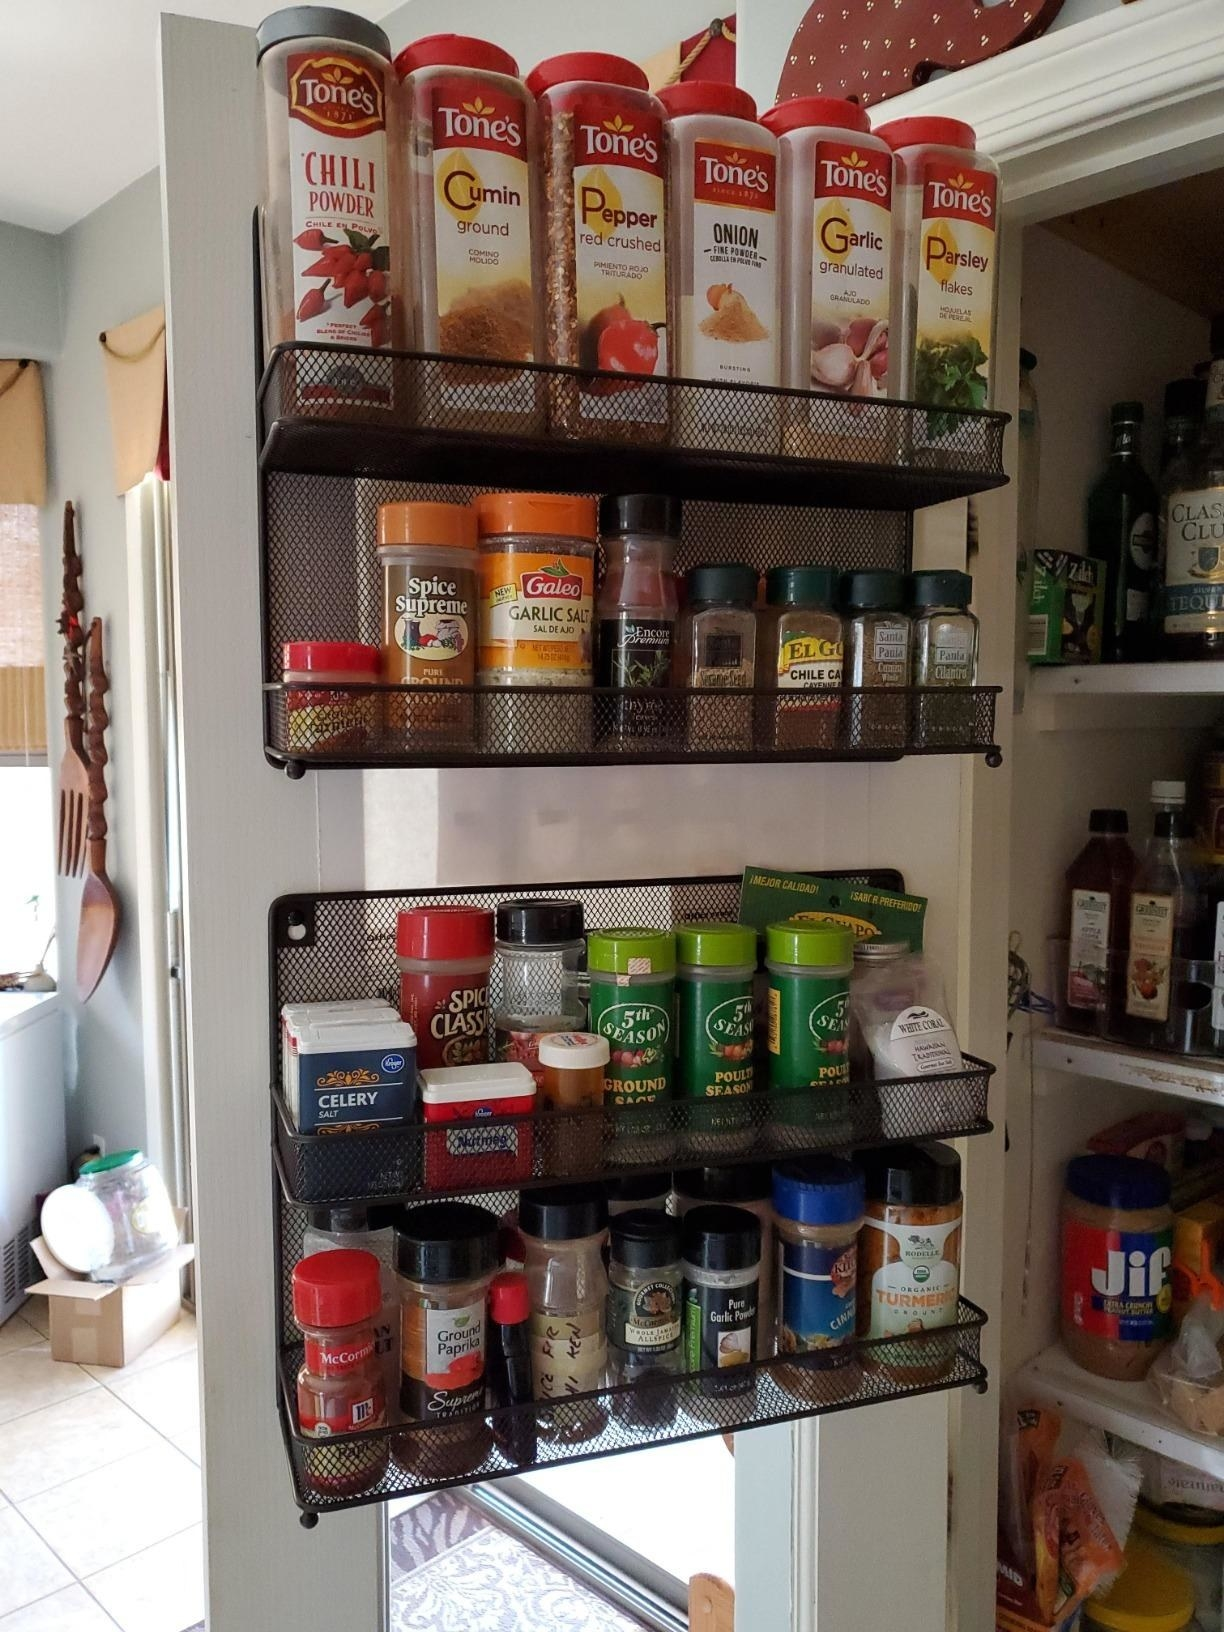 The racks, installed on a pantry door, and filled with spices